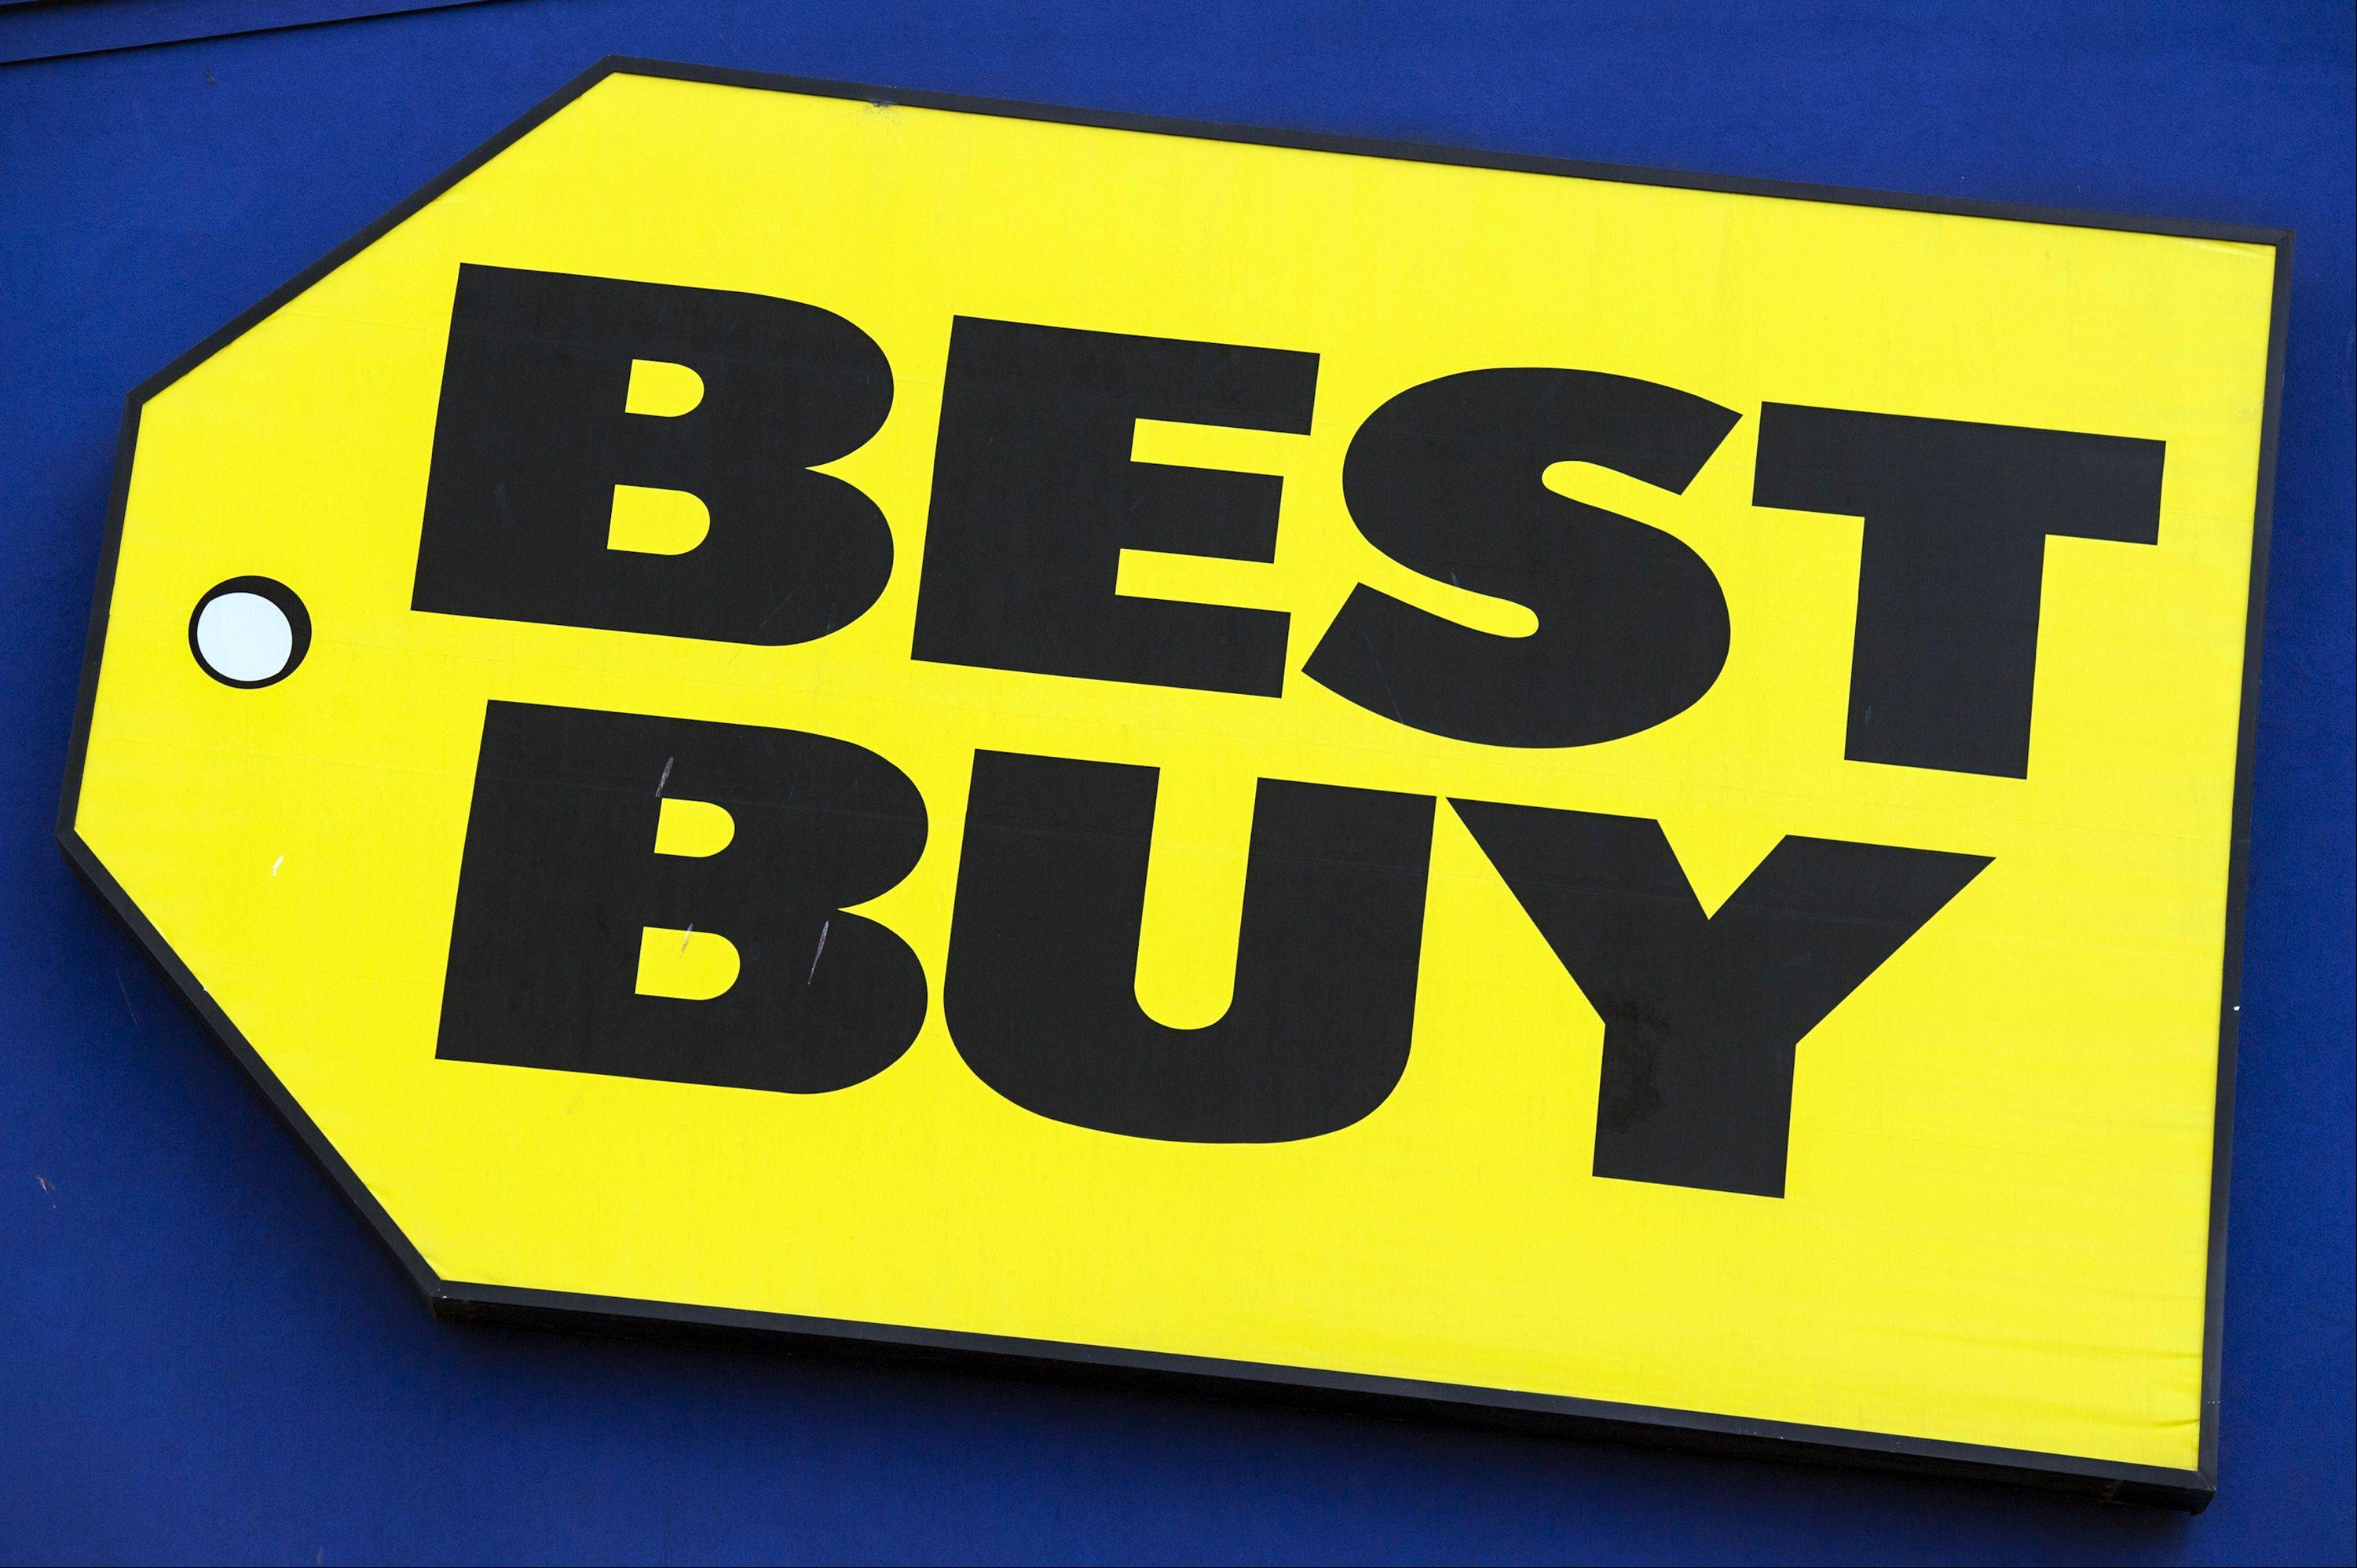 Best Buy said Thursday it will create store-within-store kiosks for Samsung products � a vote of confidence from a major consumer electronics retailer that the brick-and-mortar format is still an important way to sell products.